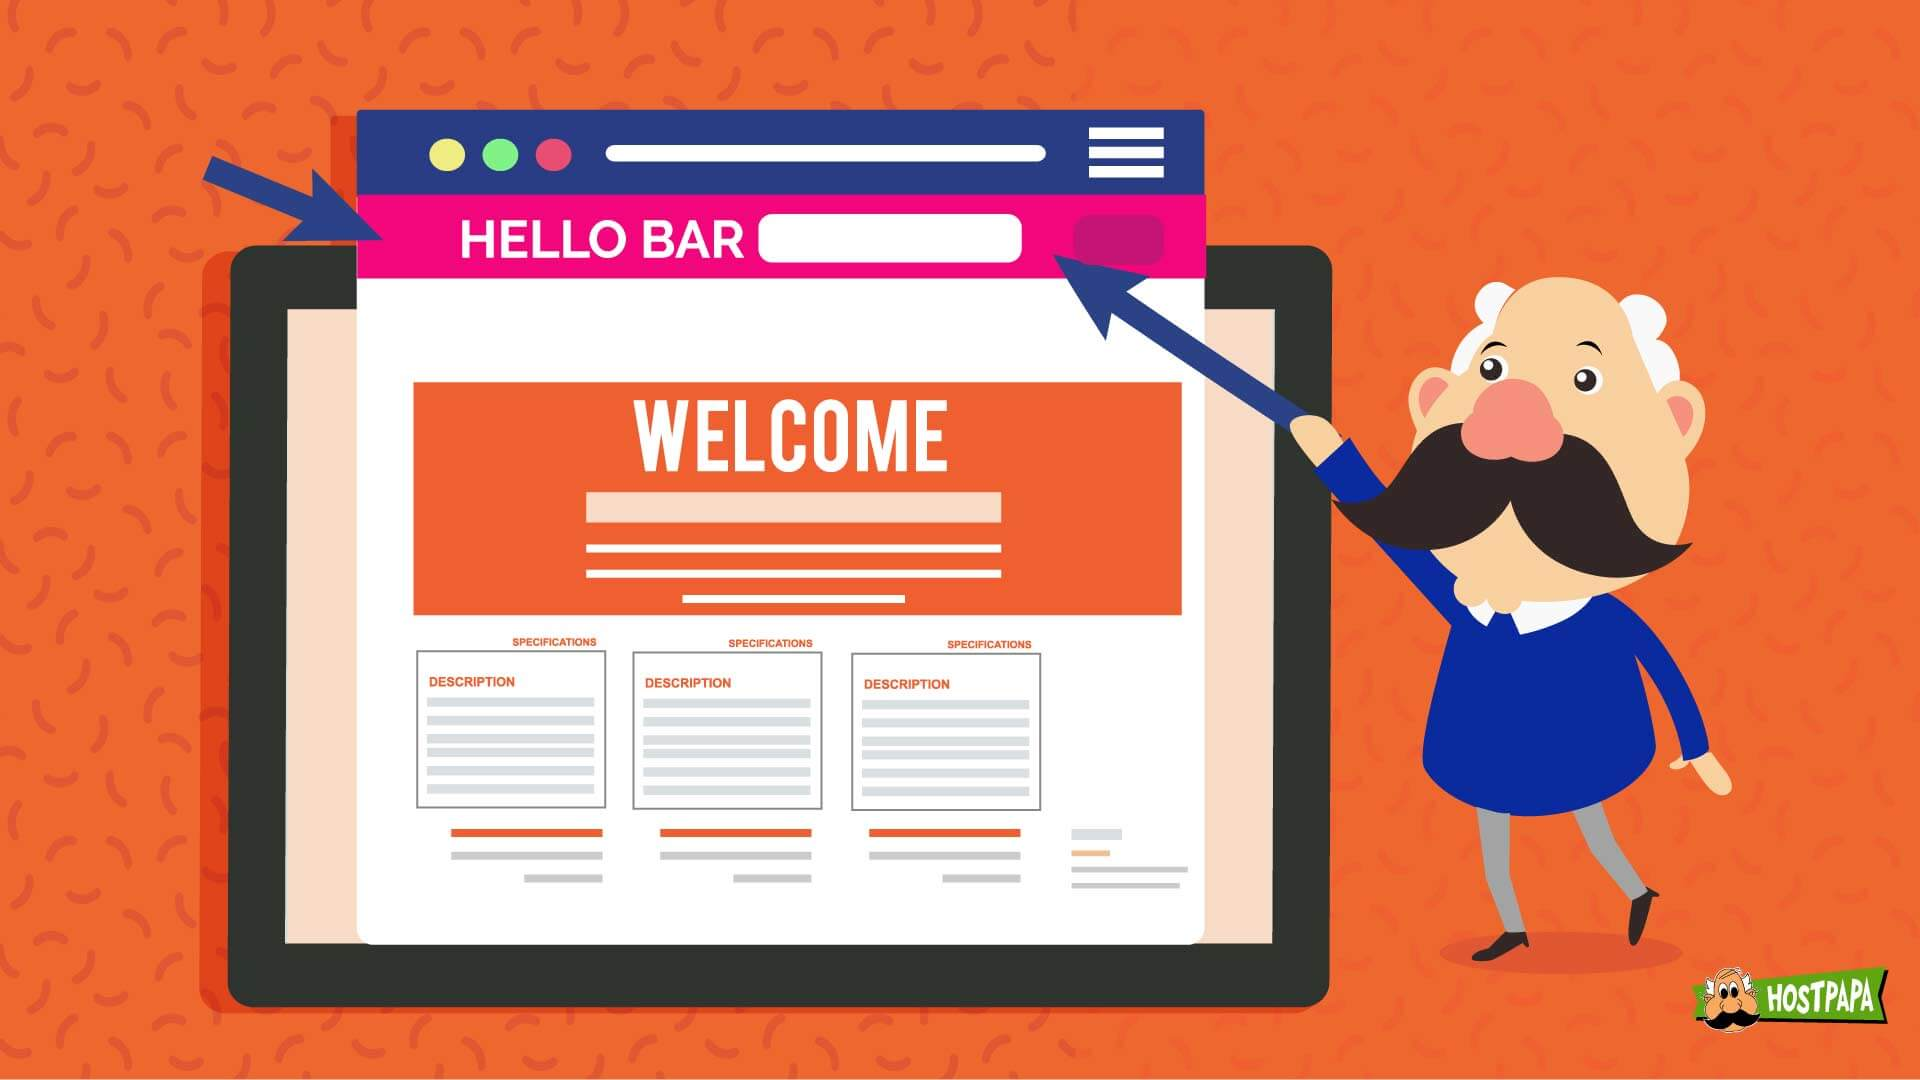 Hello Bar: An Alternative To Annoying Popups On Your Website